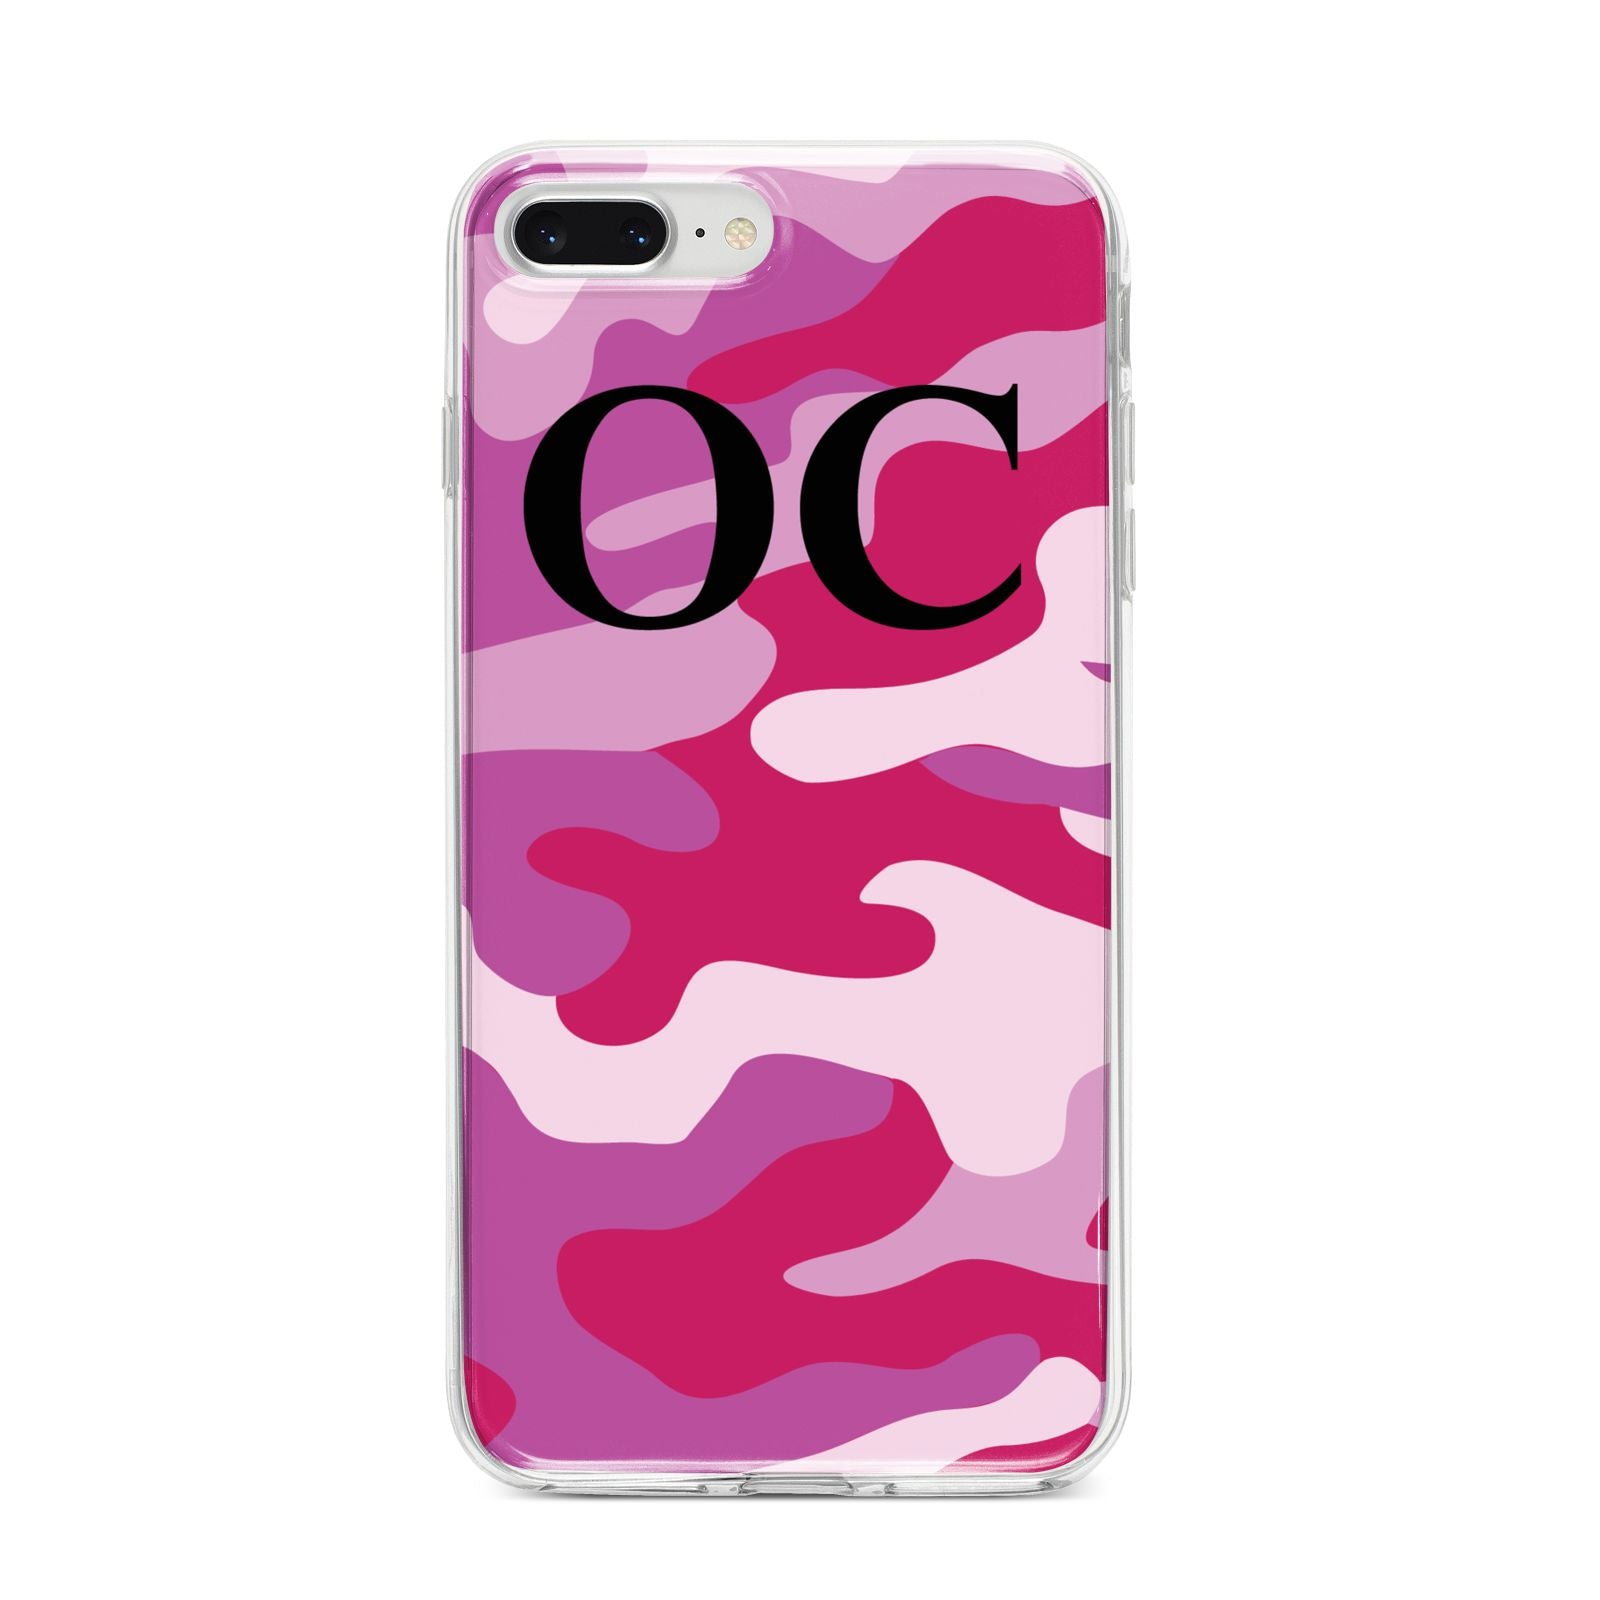 Camouflage Personalised iPhone 8 Plus Bumper Case on Silver iPhone